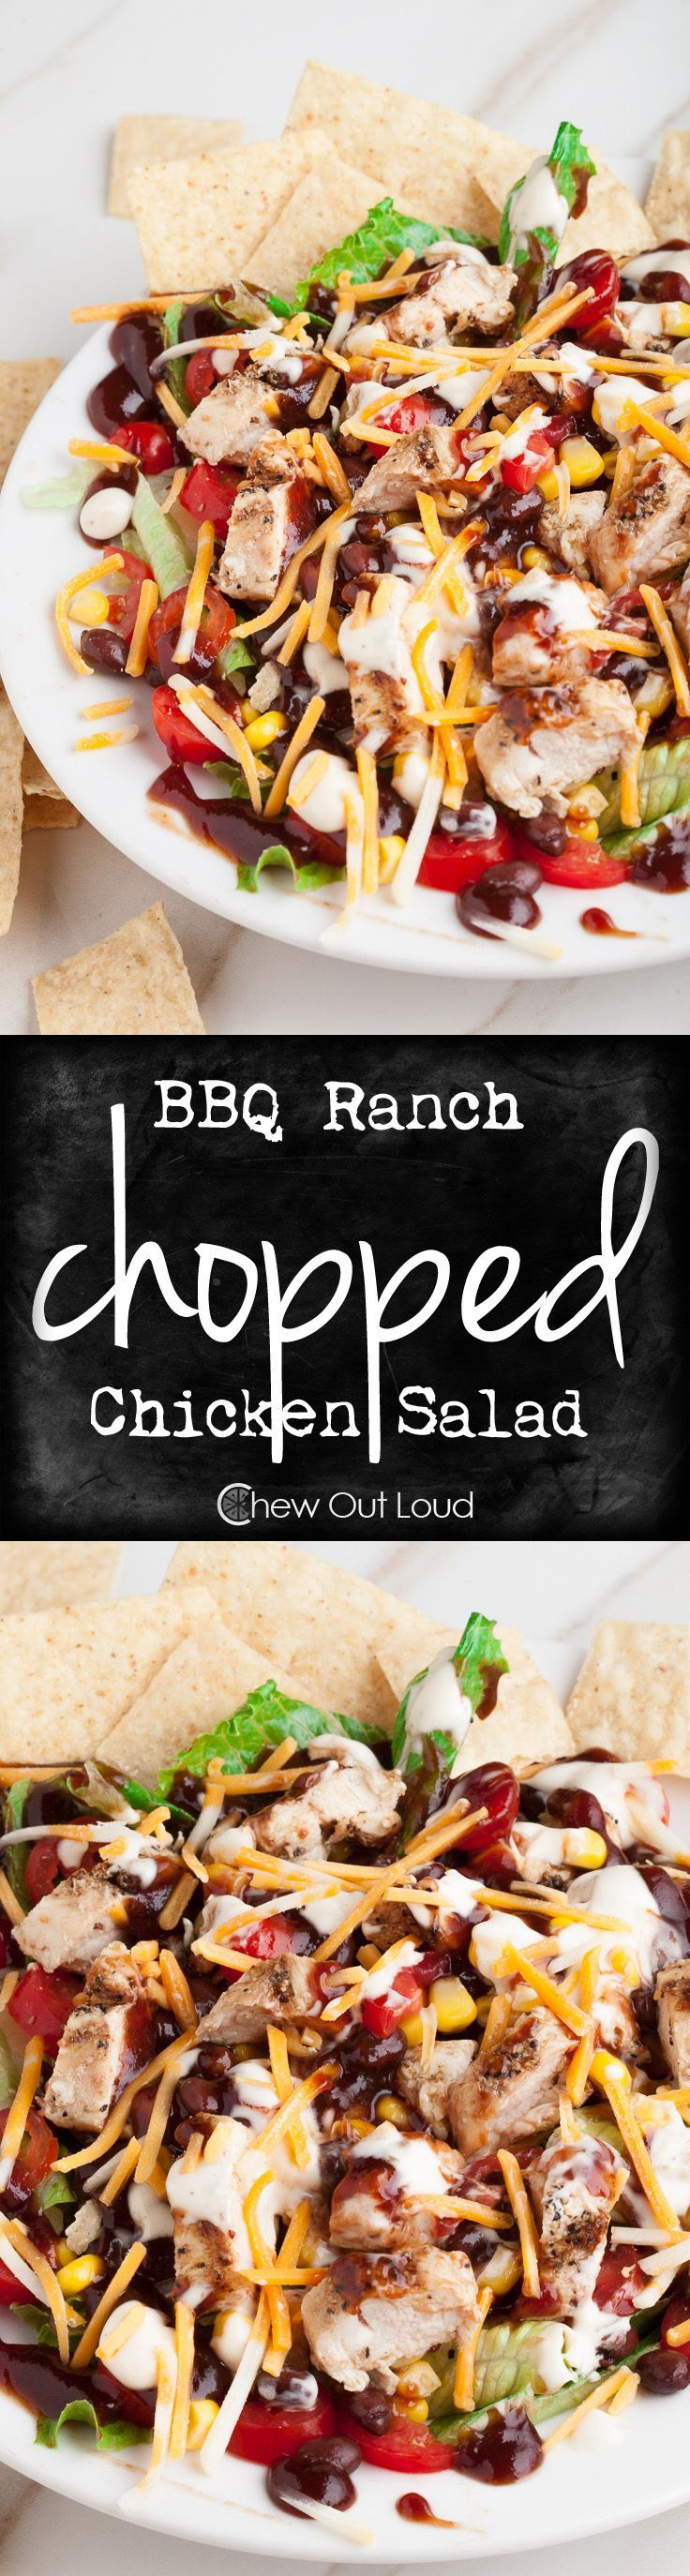 BBQ Ranch Chopped Chicken Salad - Easy, delicious, & nutritious!  Awesome simple yet yummy recipe for busy weekdays.